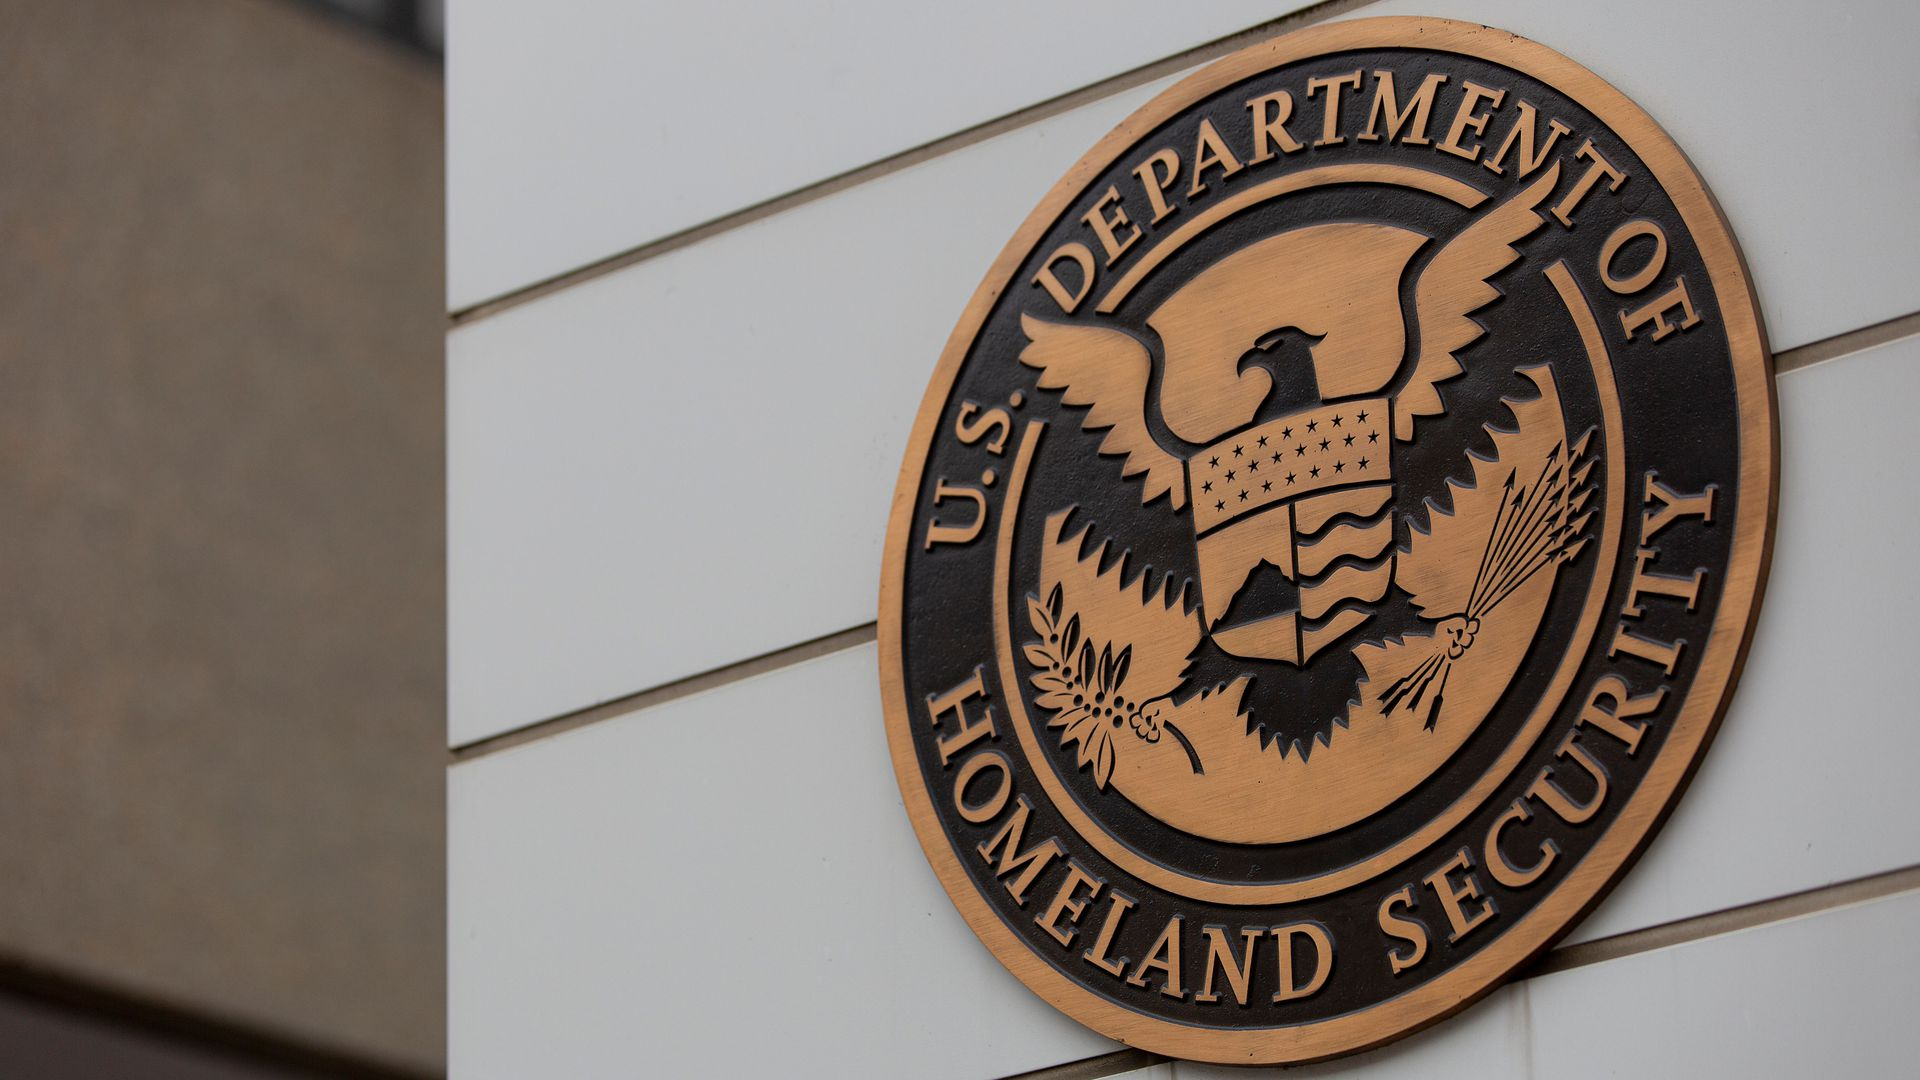 The seal of the Department of Homeland Security on a building.